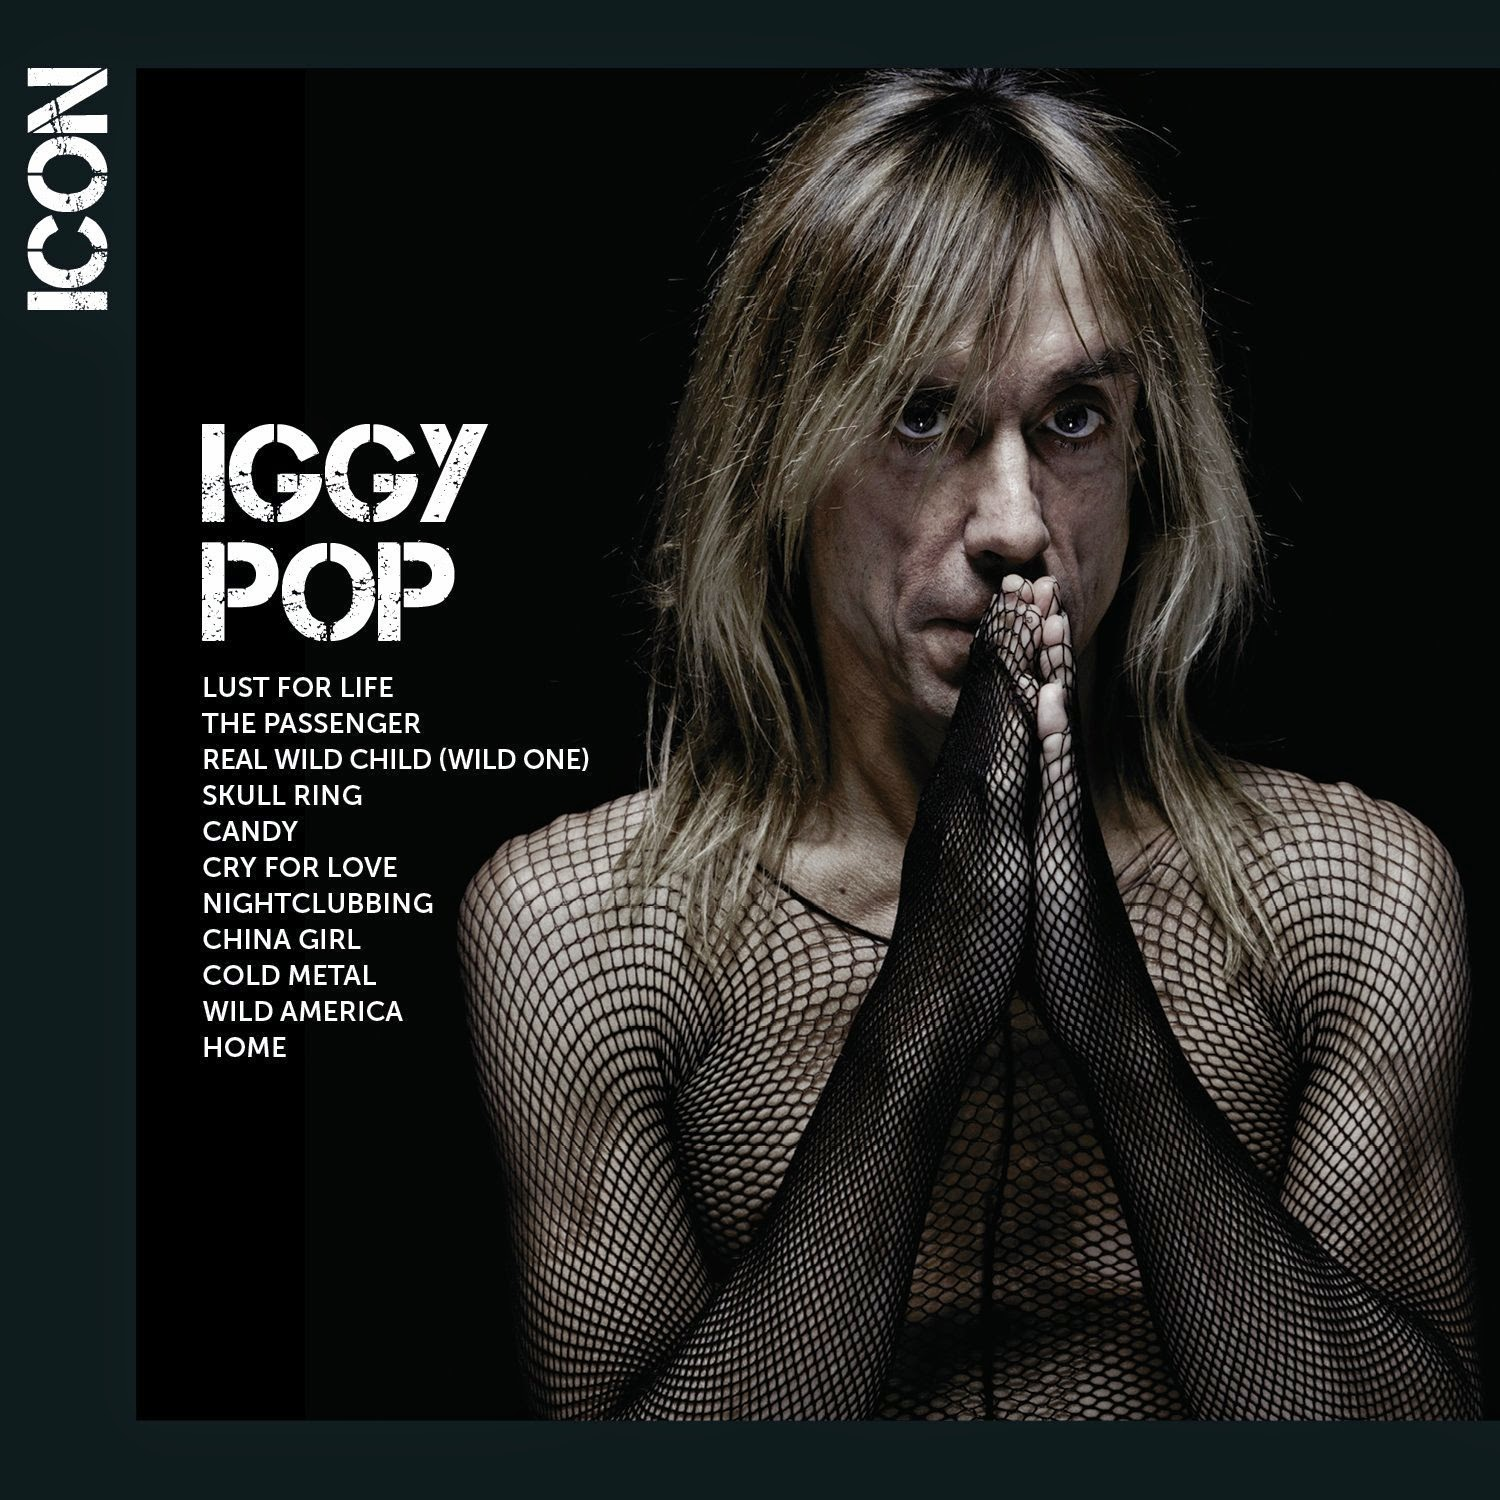 Iggy Pop Album Covers Simple bob mersereau's top 100 canadian blog: music review of the day